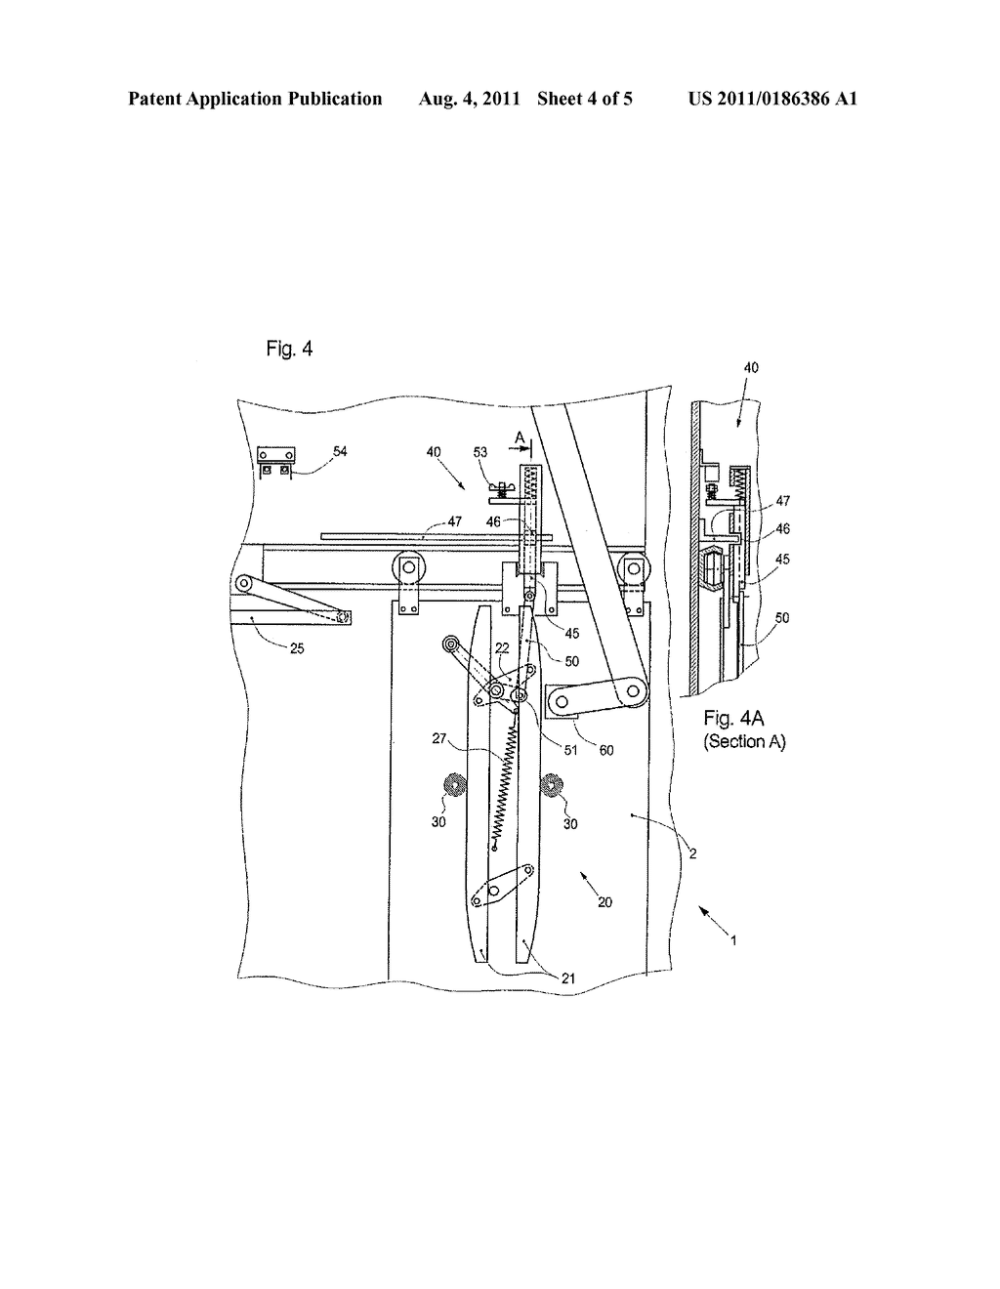 medium resolution of elevator door system comprising a car door locking mechanism diagram schematic and image 05